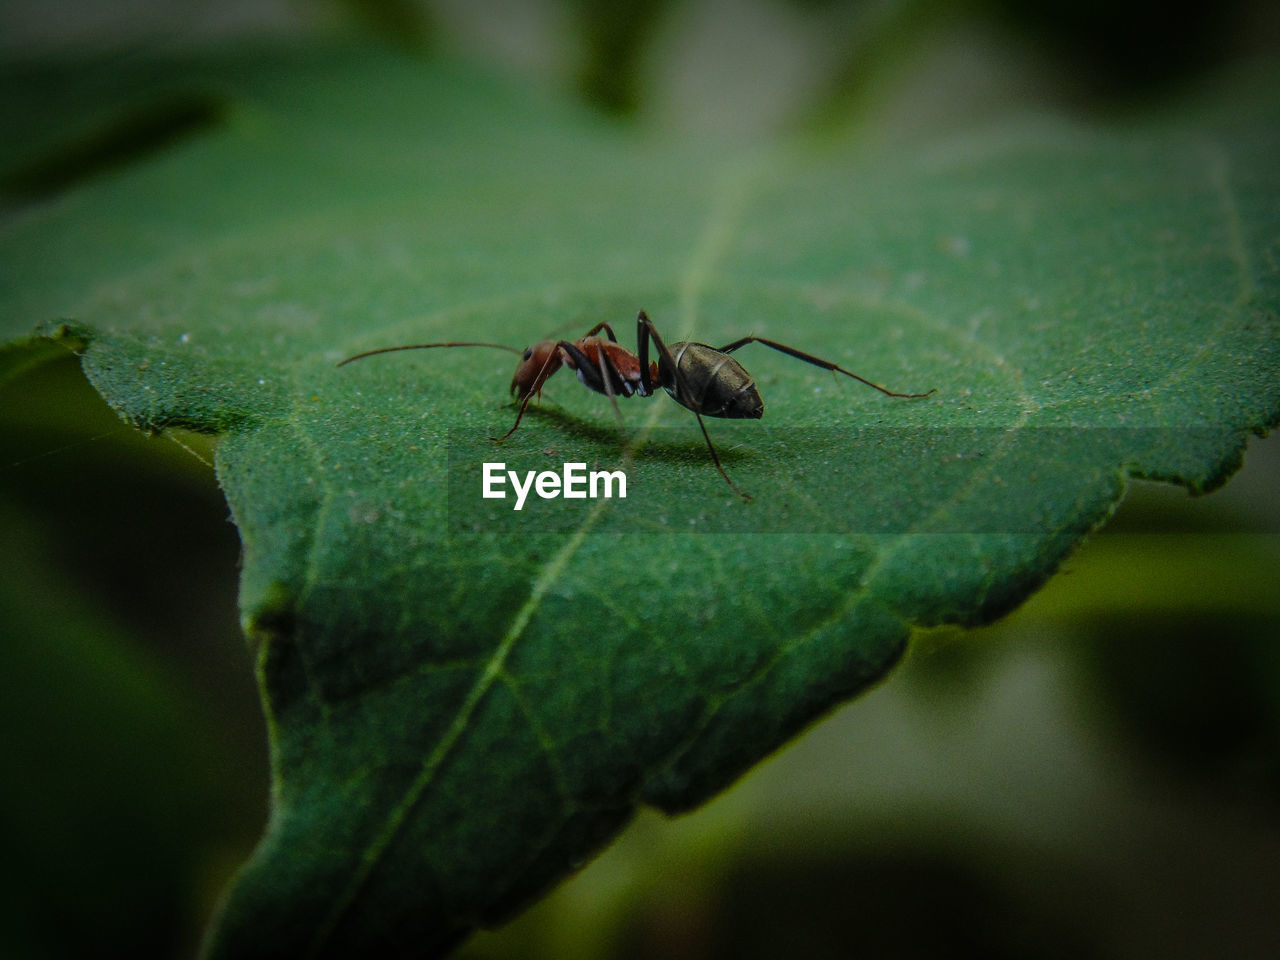 plant part, leaf, invertebrate, green color, insect, close-up, animal wildlife, one animal, animal, selective focus, animal themes, animals in the wild, no people, nature, day, plant, outdoors, focus on foreground, zoology, arthropod